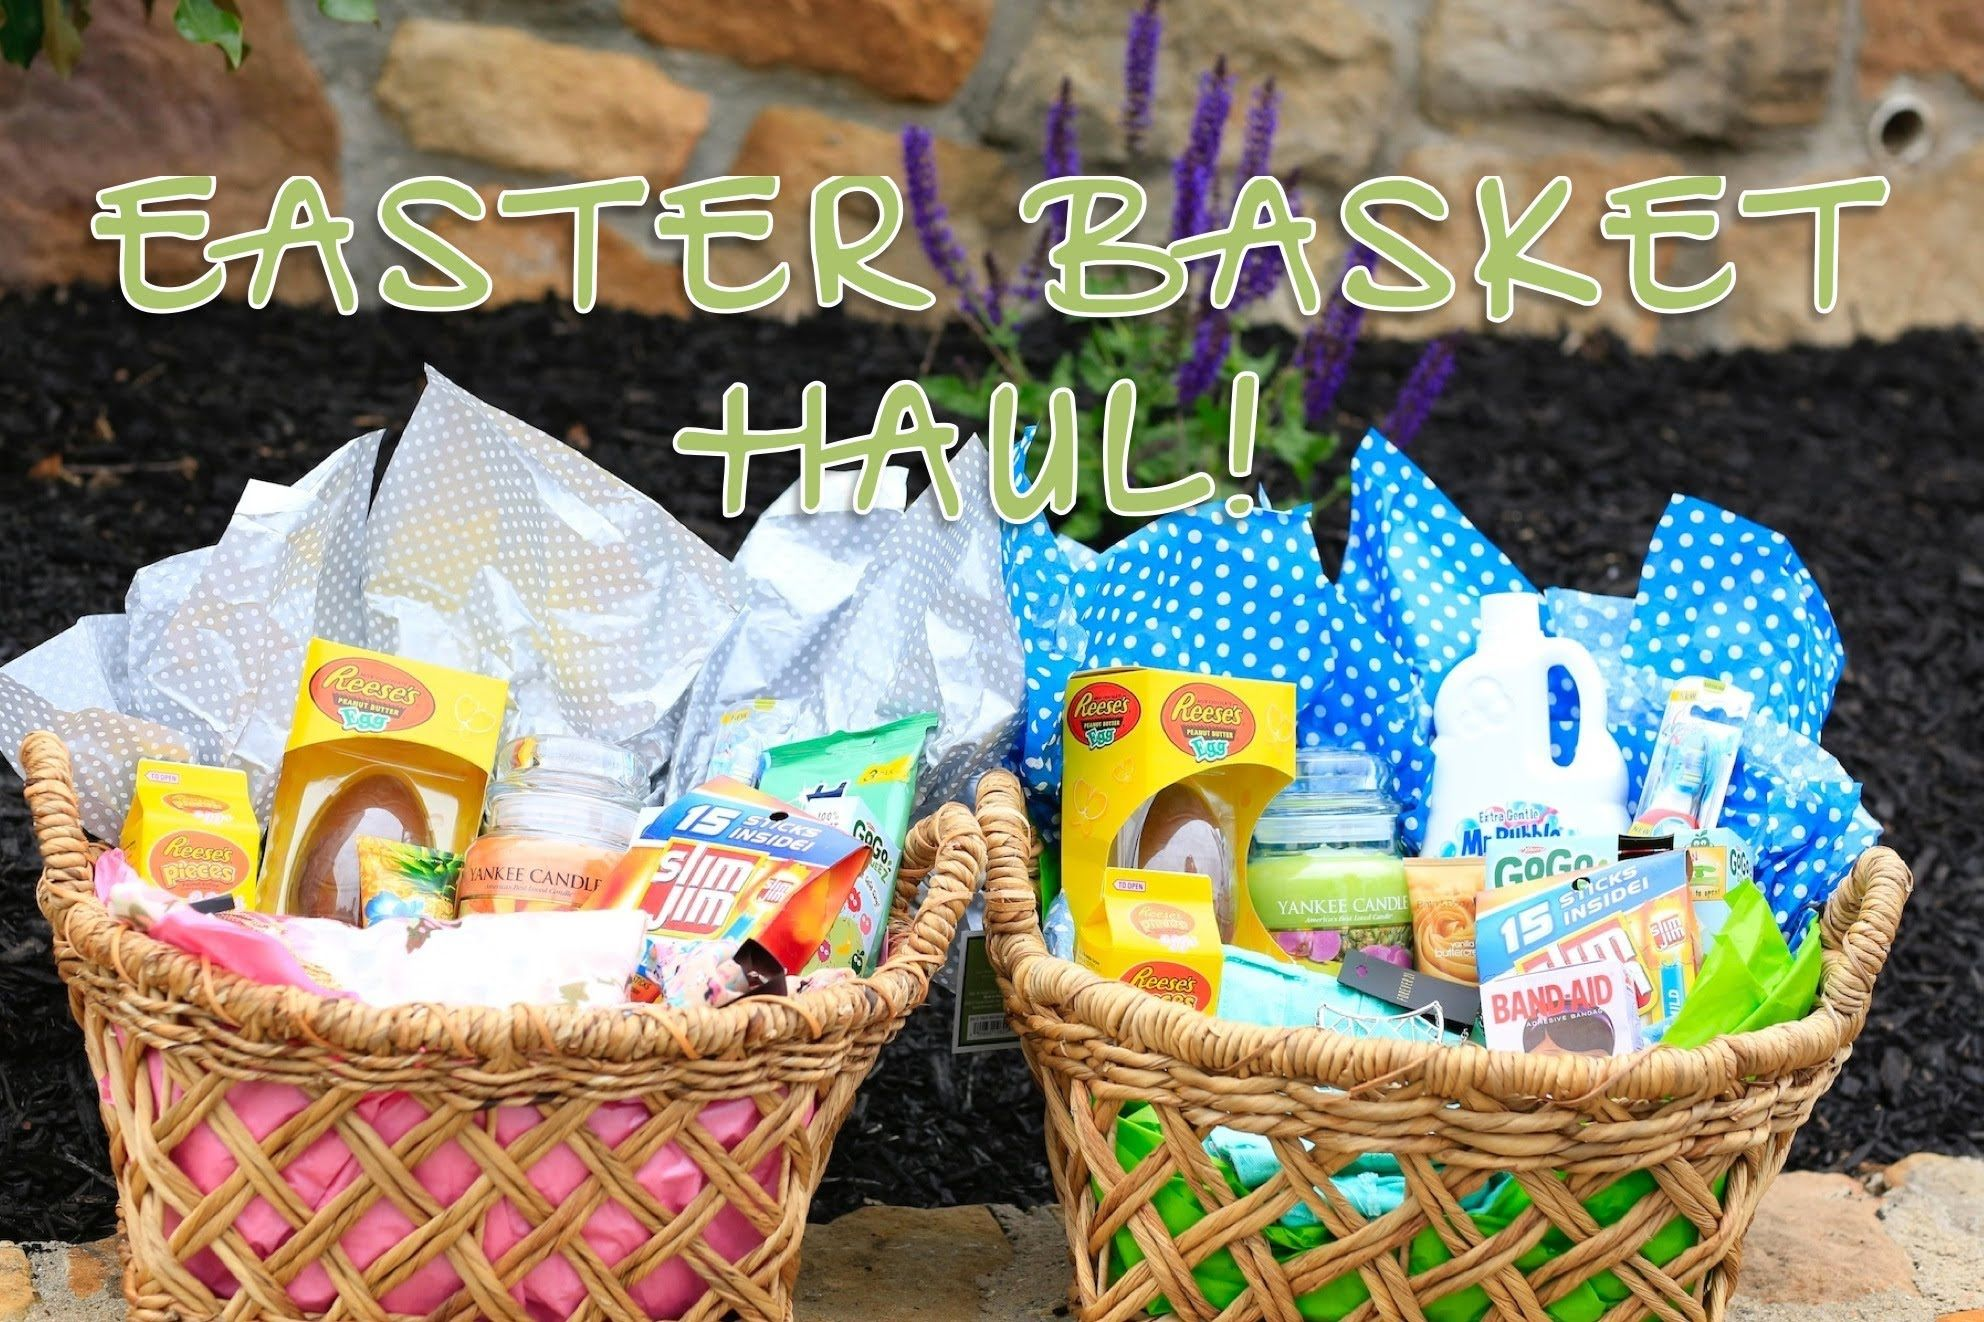 Easter basket haul brooklyn and bailey brooklyn and bailey vids easter basket haul brooklyn and bailey negle Choice Image